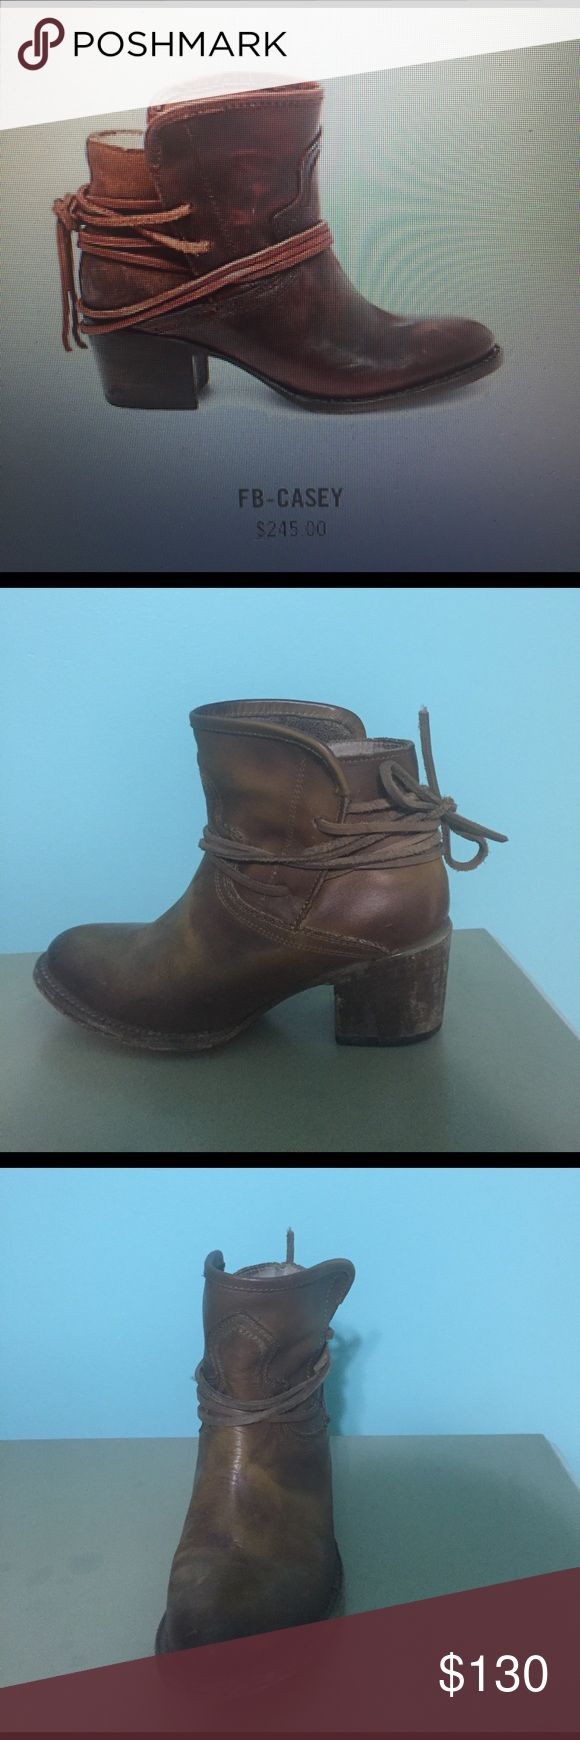 steve madden free bird booties very cute brown leather booties!! perfect for everyday! only worn once, in great condition Steve Madden Shoes Ankle Boots & Booties